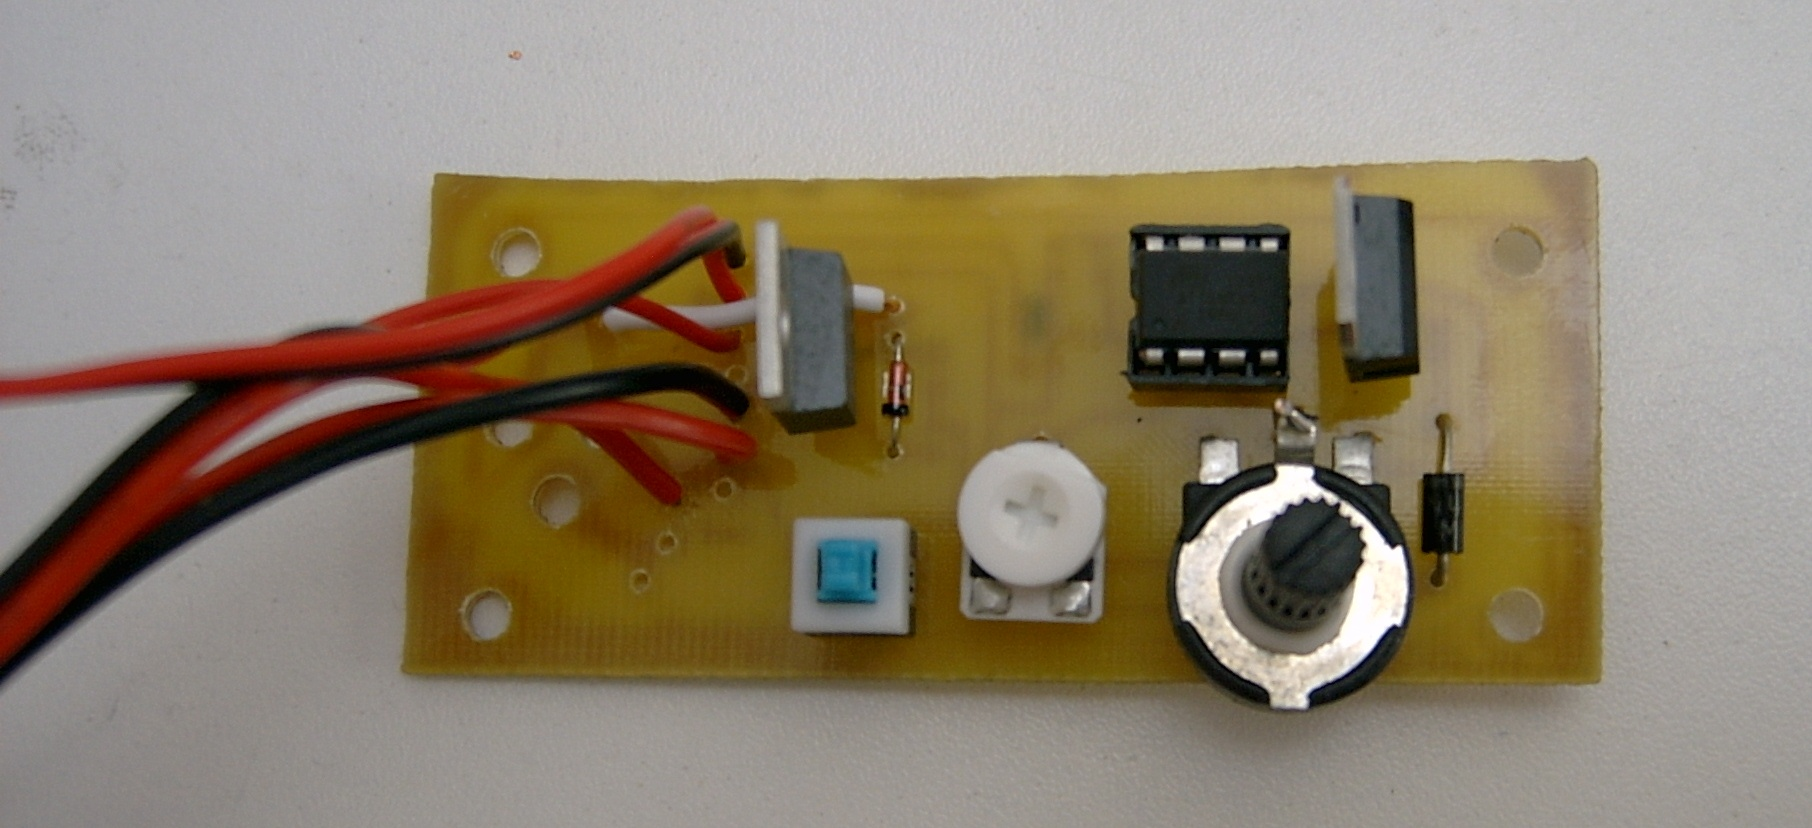 Picture of Soldered Components